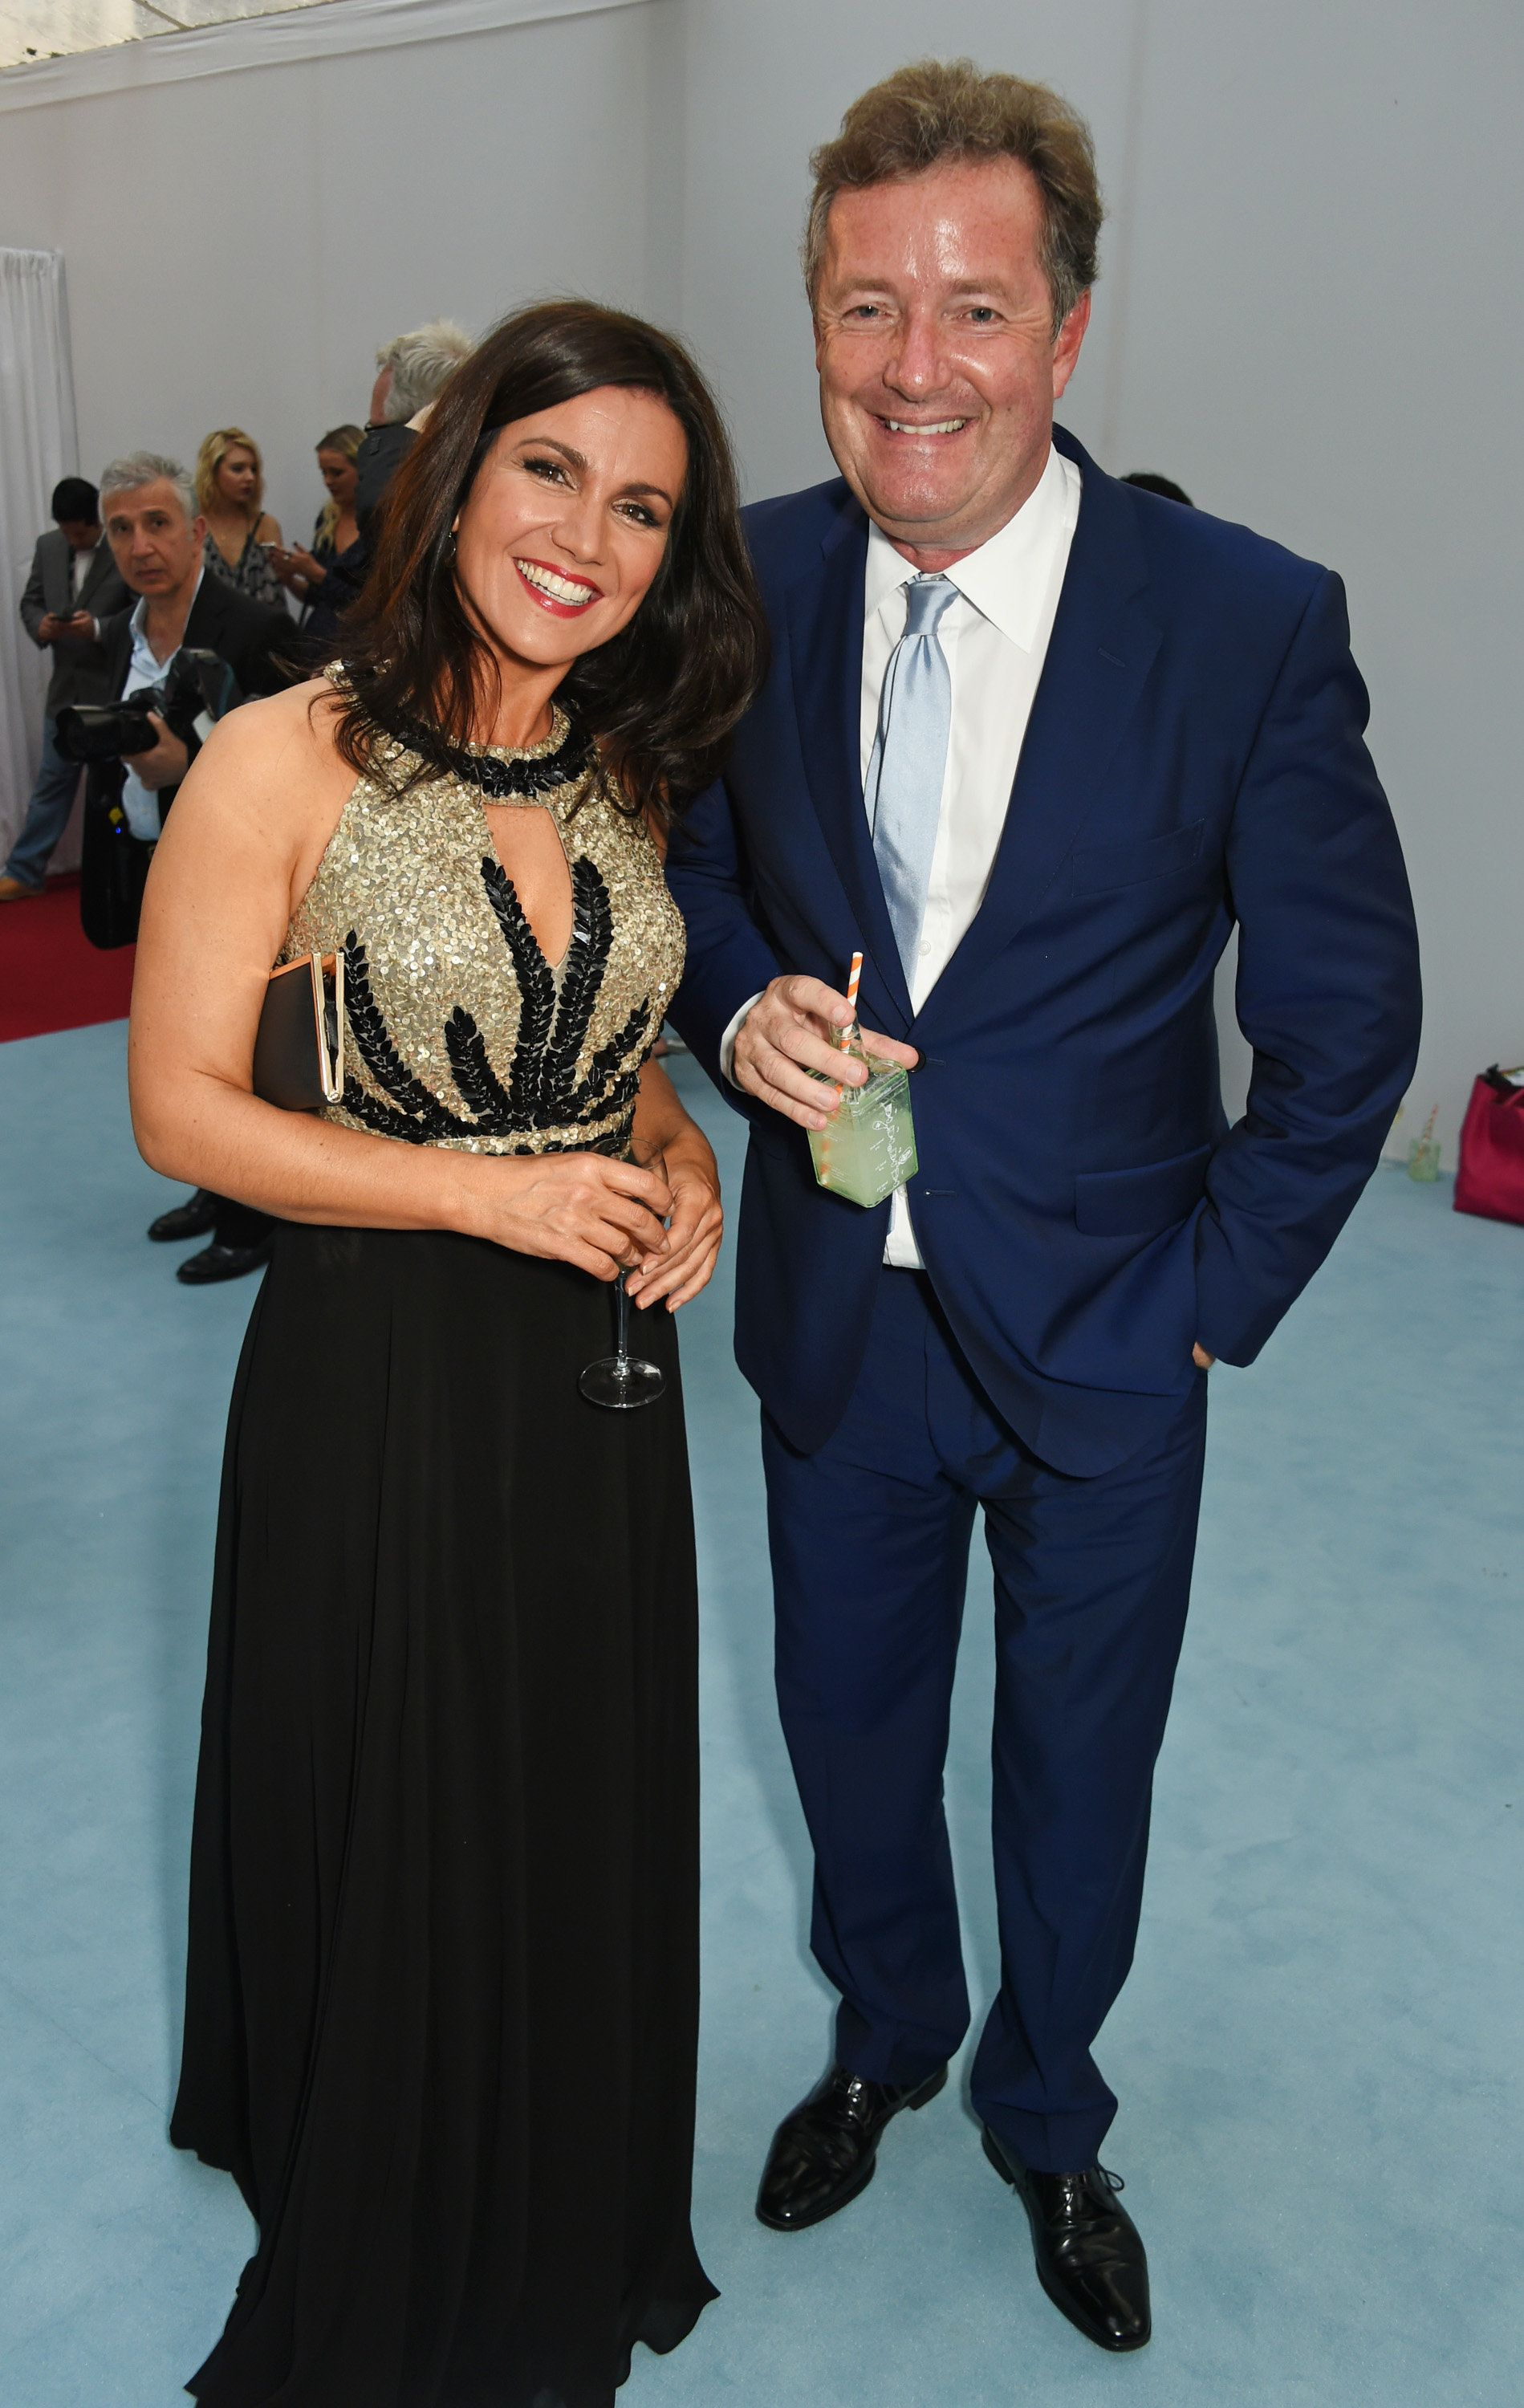 Susanna Reid's 'Piers Morgan Survival Kit' Explains A